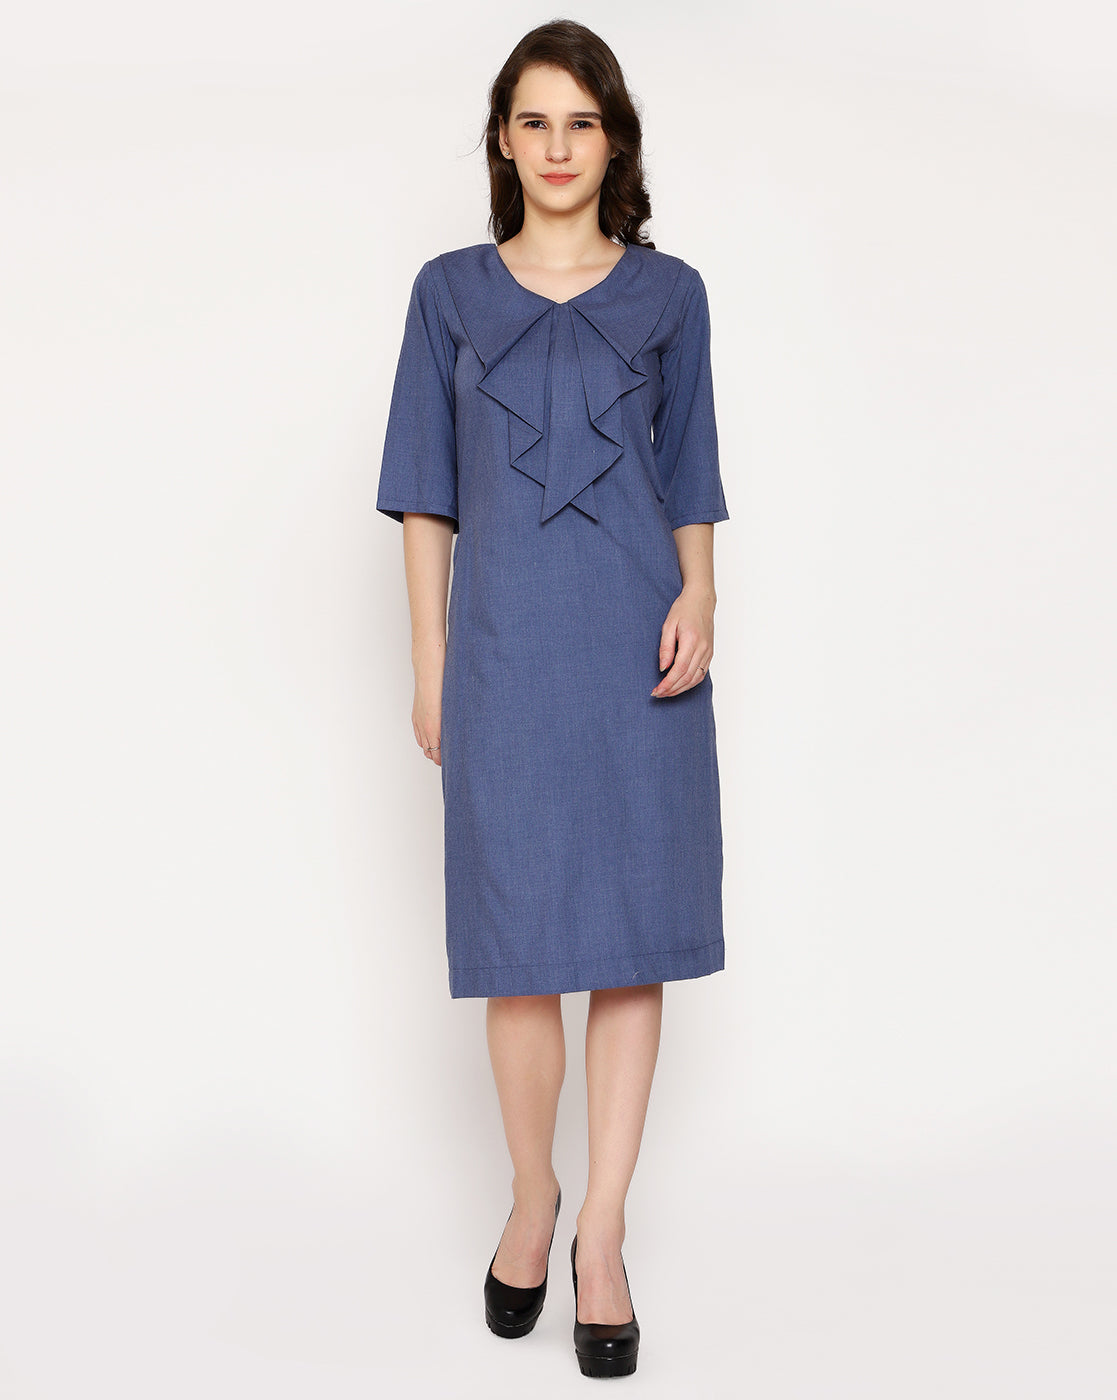 Posh waterfall Collar Dress- Aged Denim